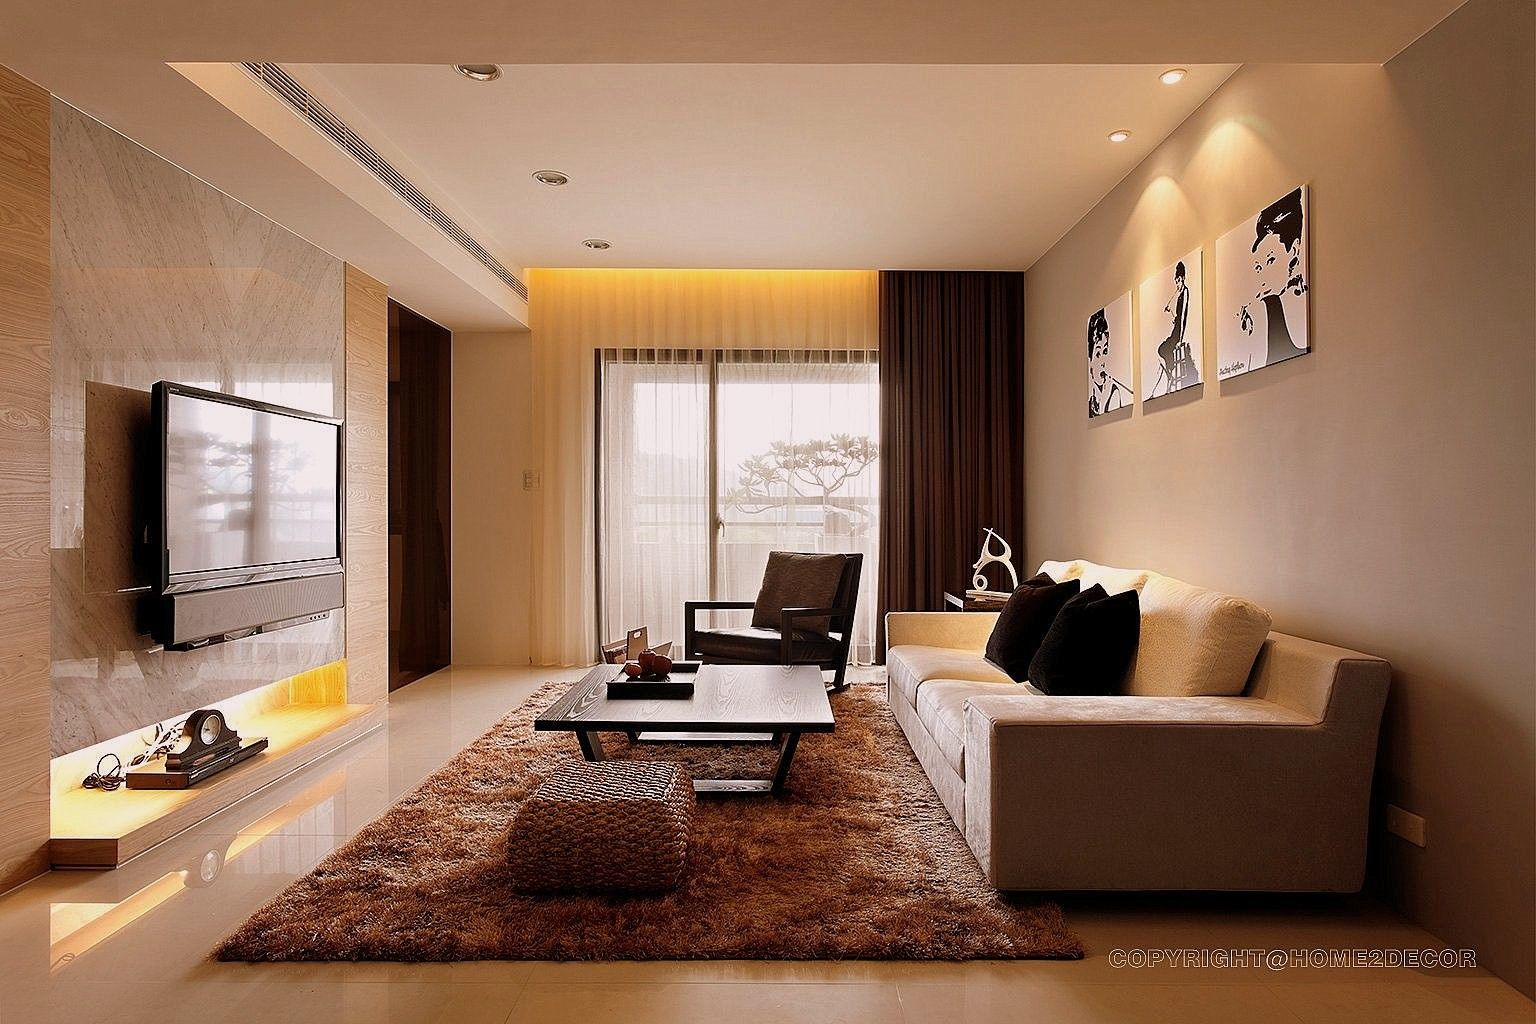 interior design ideas living room mumbai HOME DESIGN MINIMALIST